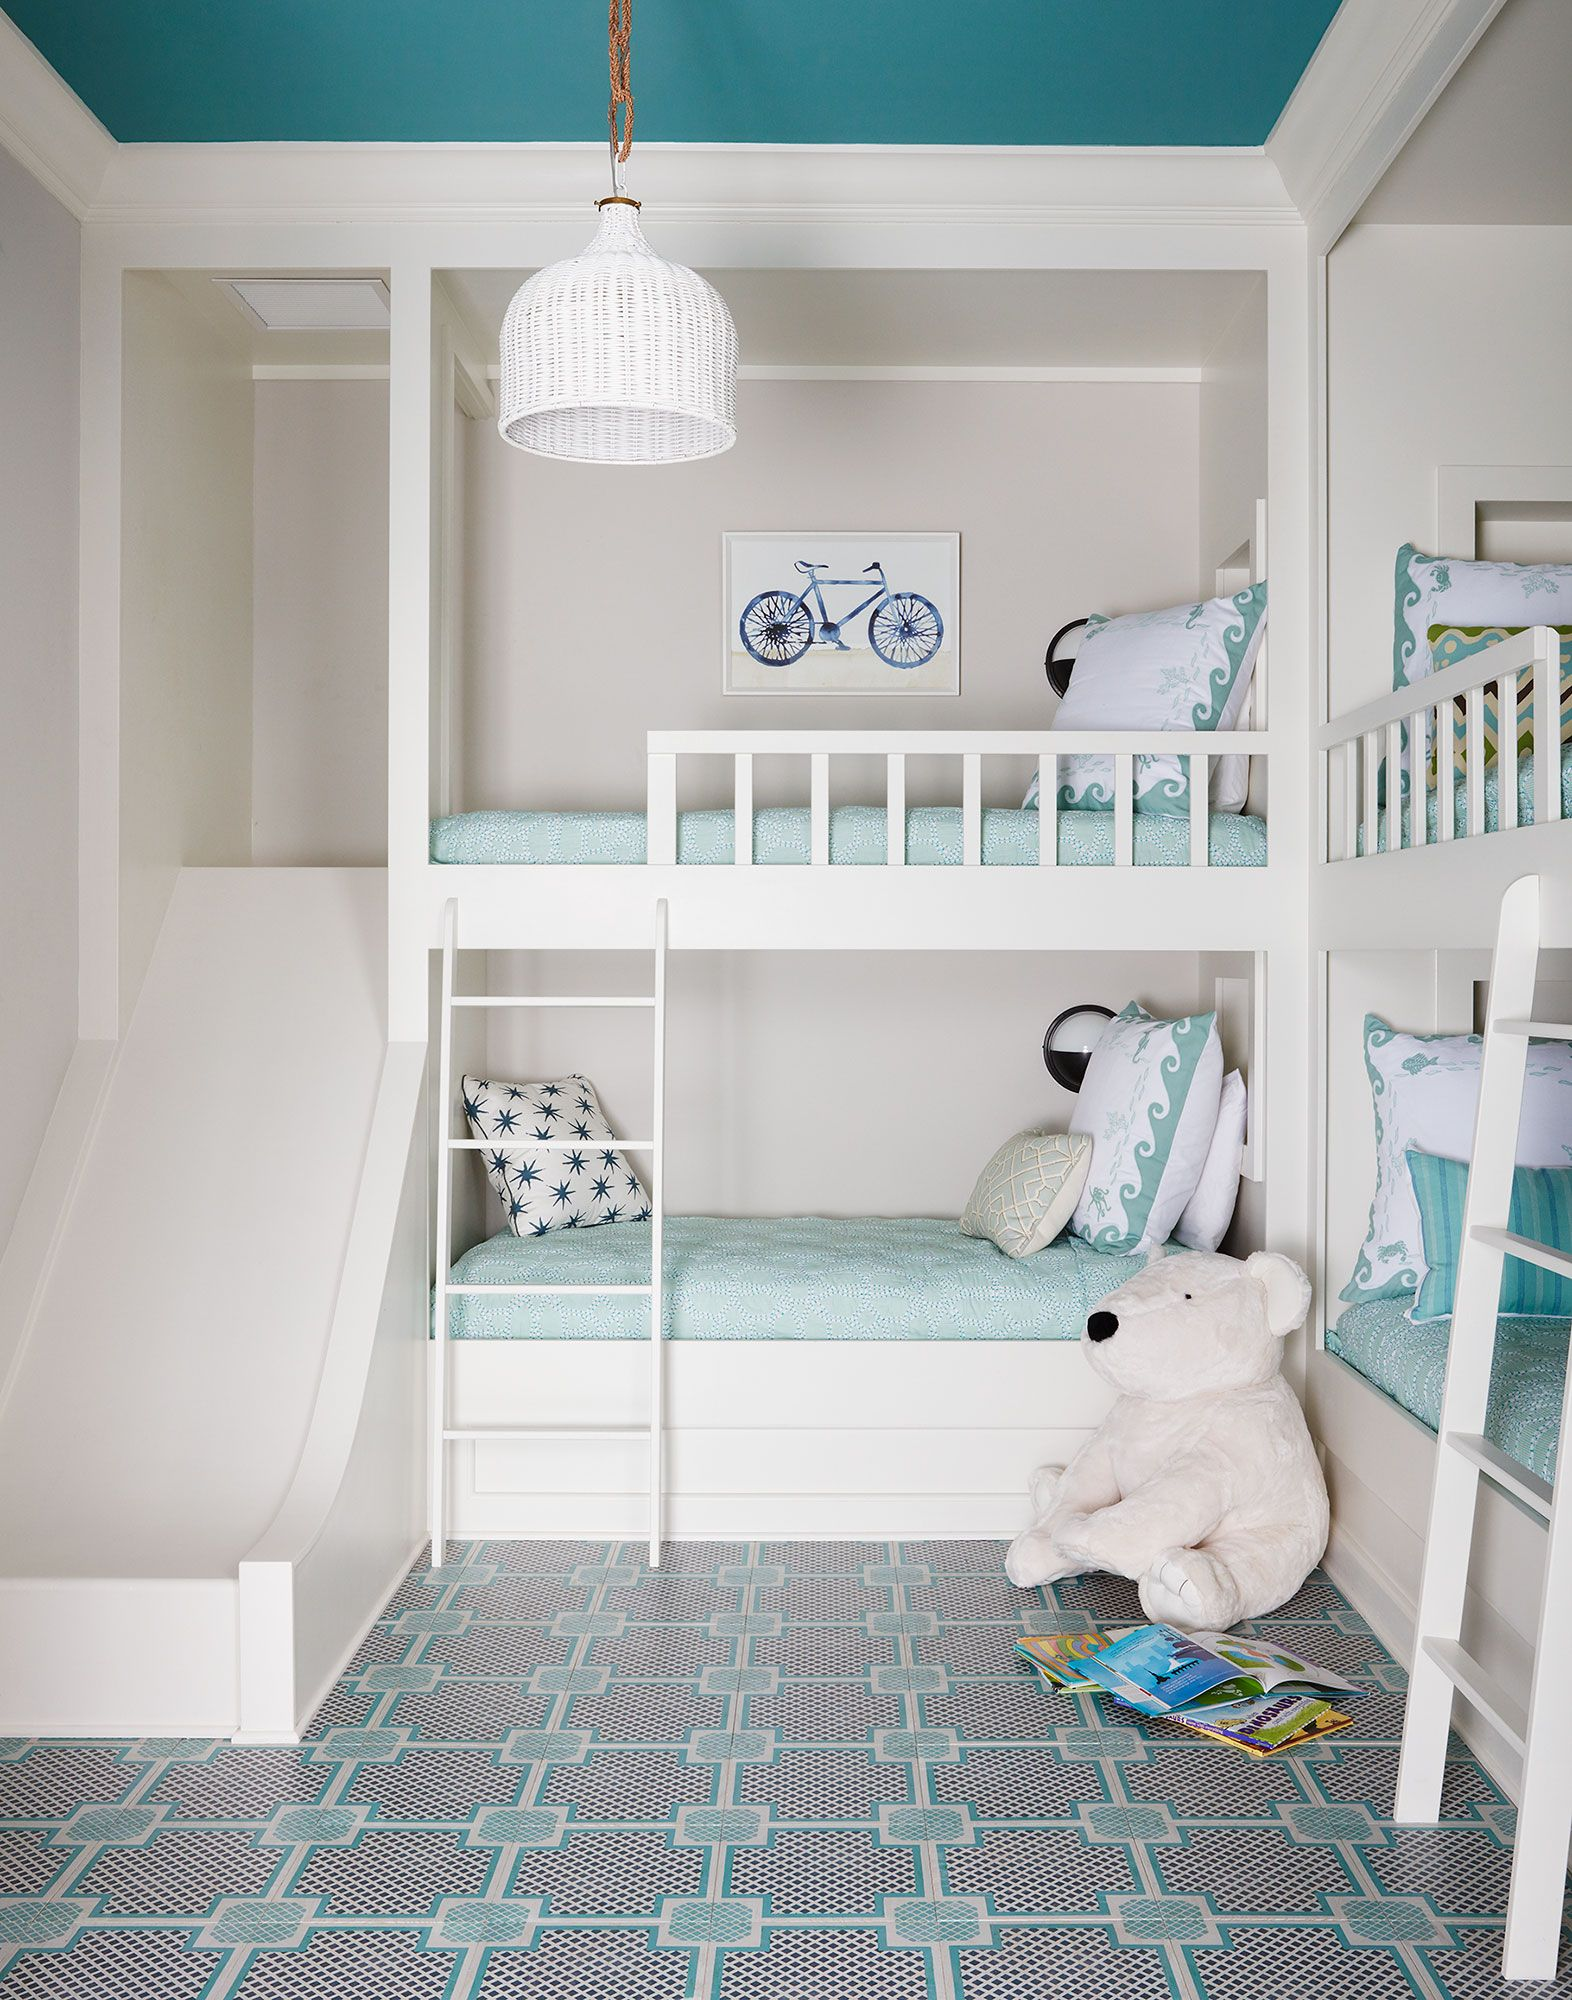 Built in loft bed ideas  Pin by Kathy Sue Perdue Good Life Of Design on Childrens rooms